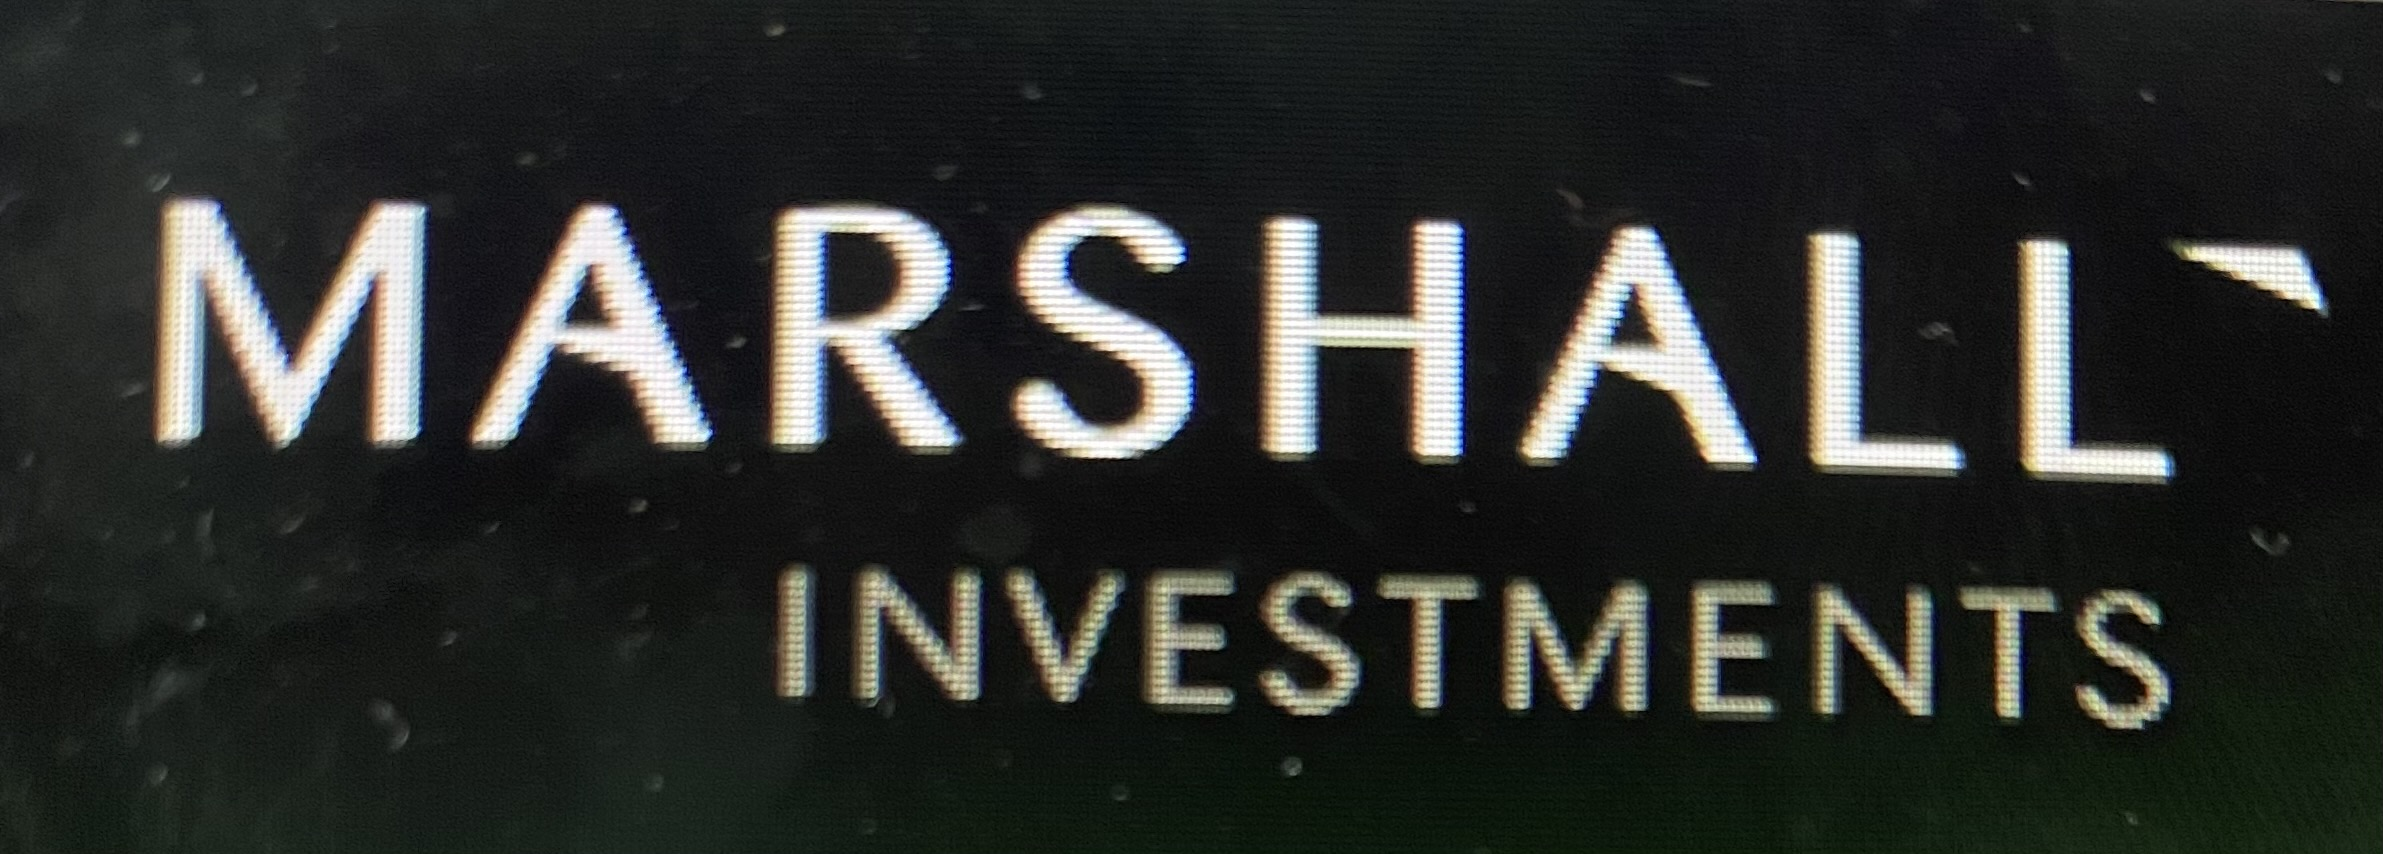 Marshall Investments logo